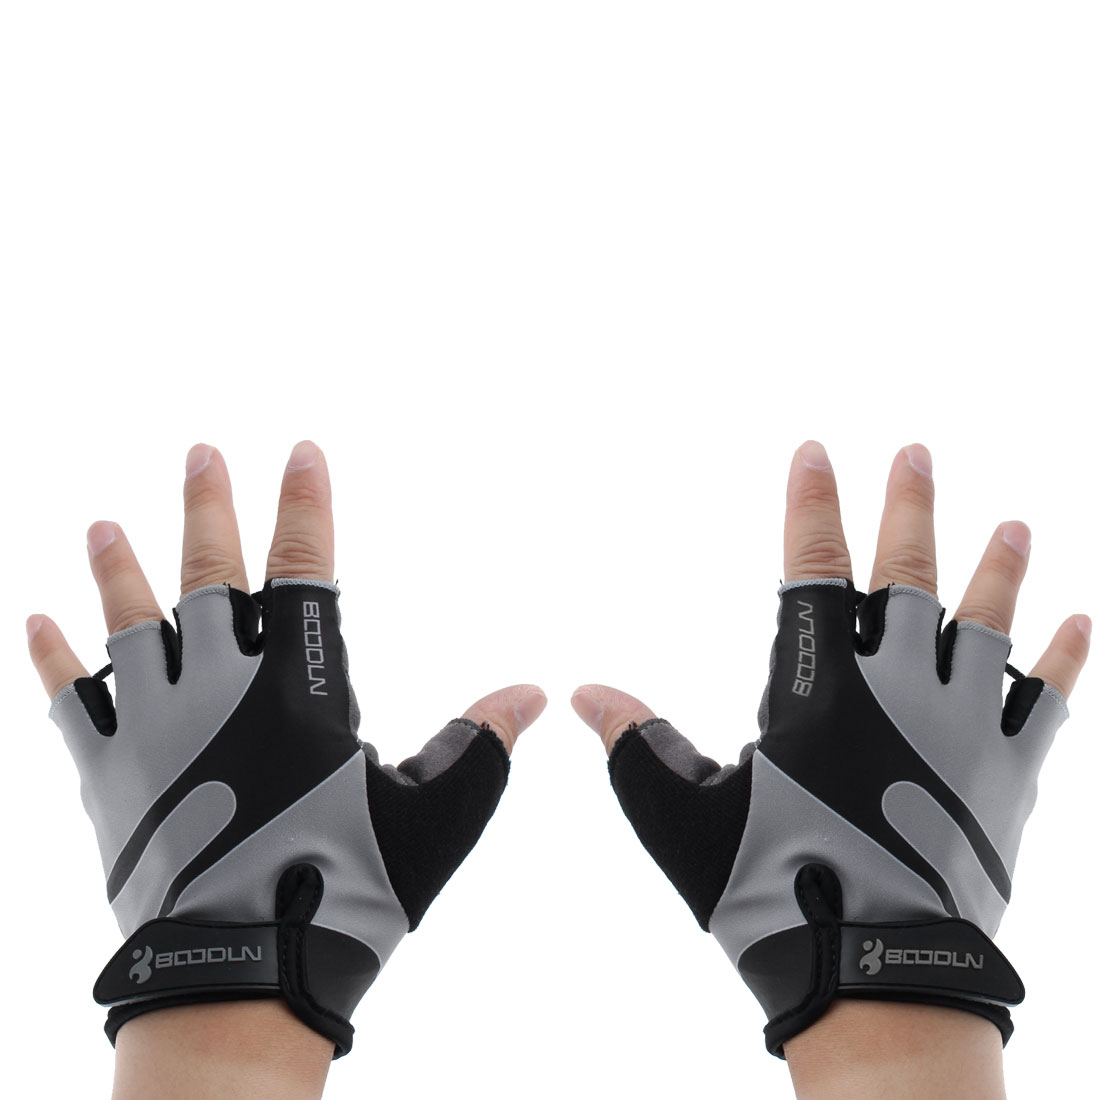 BOODUN Authorized Polyester Exercise Sports Lifting Training Bodybuilding Wrist Protector Half Finger Fitness Gloves Silver Tone XL Pair